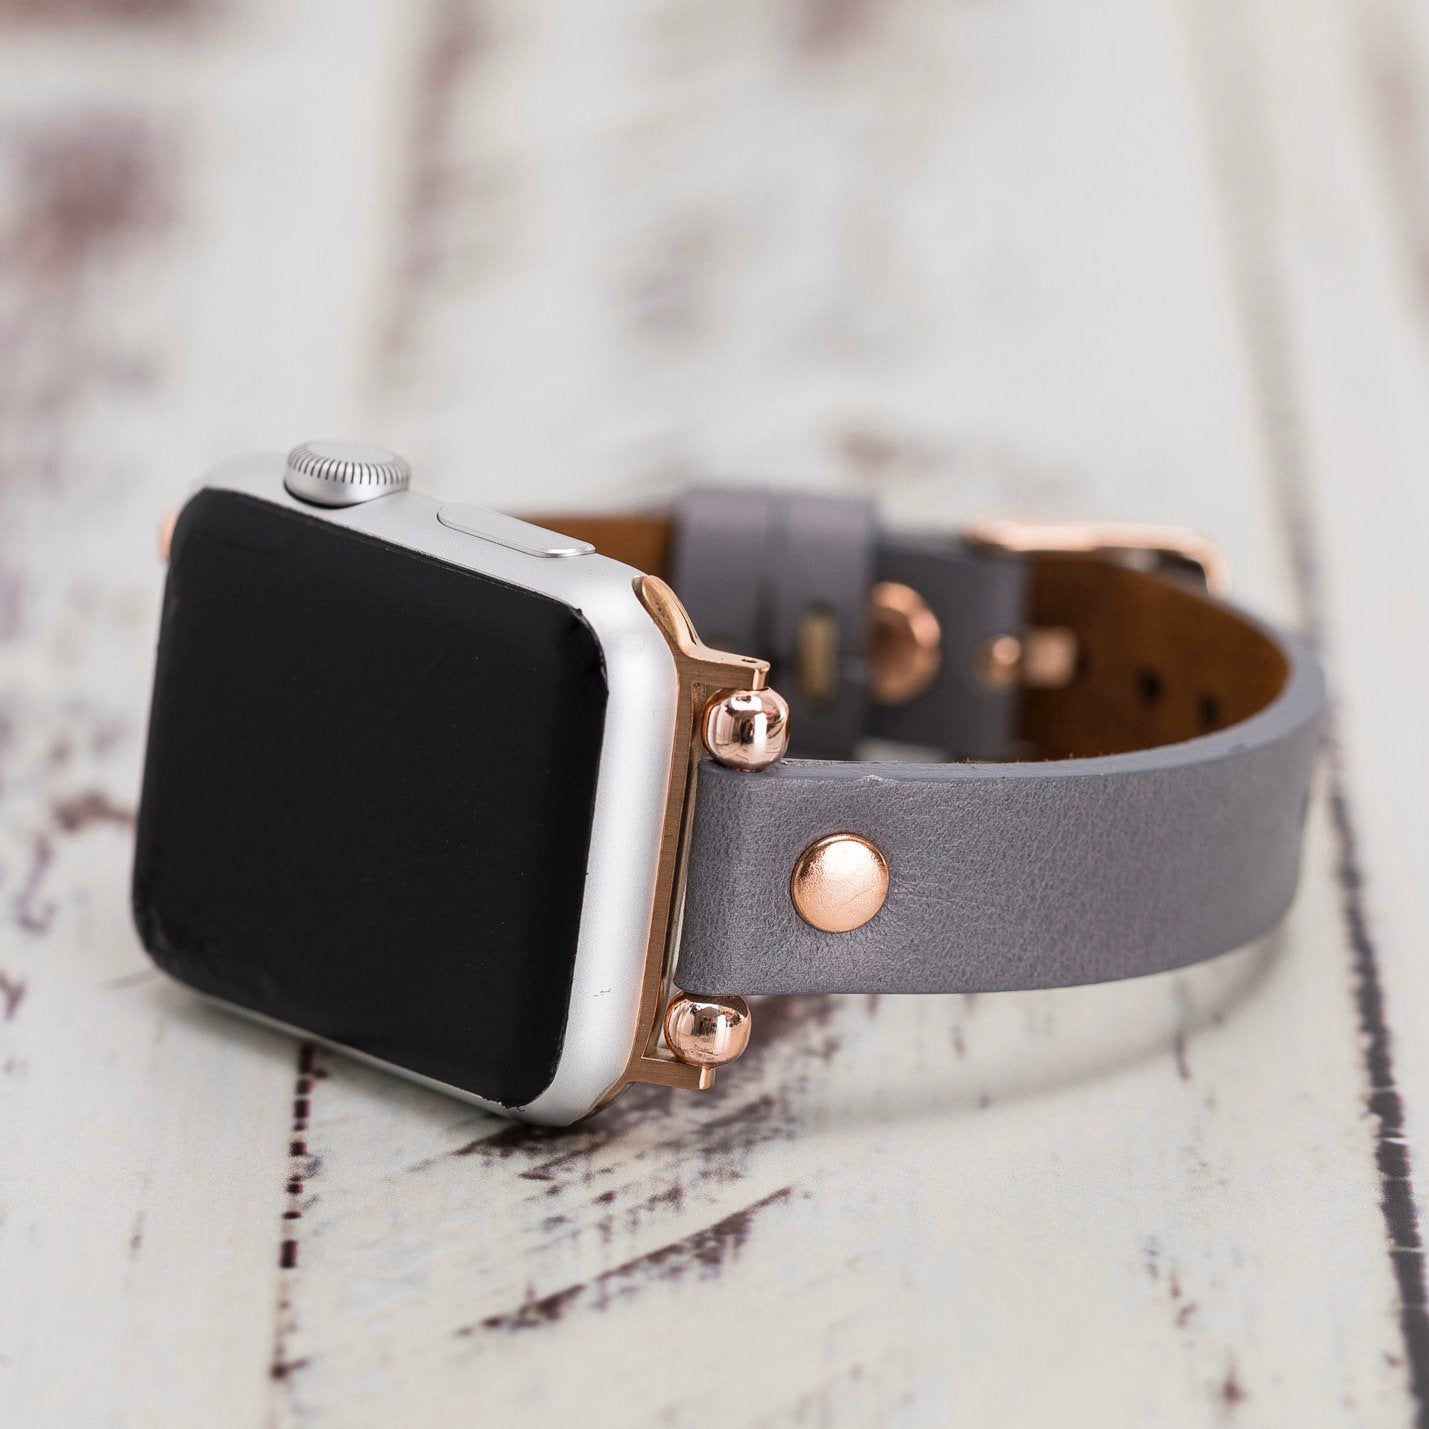 Gray Leather Apple Watch Band 38mm 40mm 42mm 44mm Slim Etsy Apple Watches For Women Apple Watch Bands Leather Apple Watch Bands Women